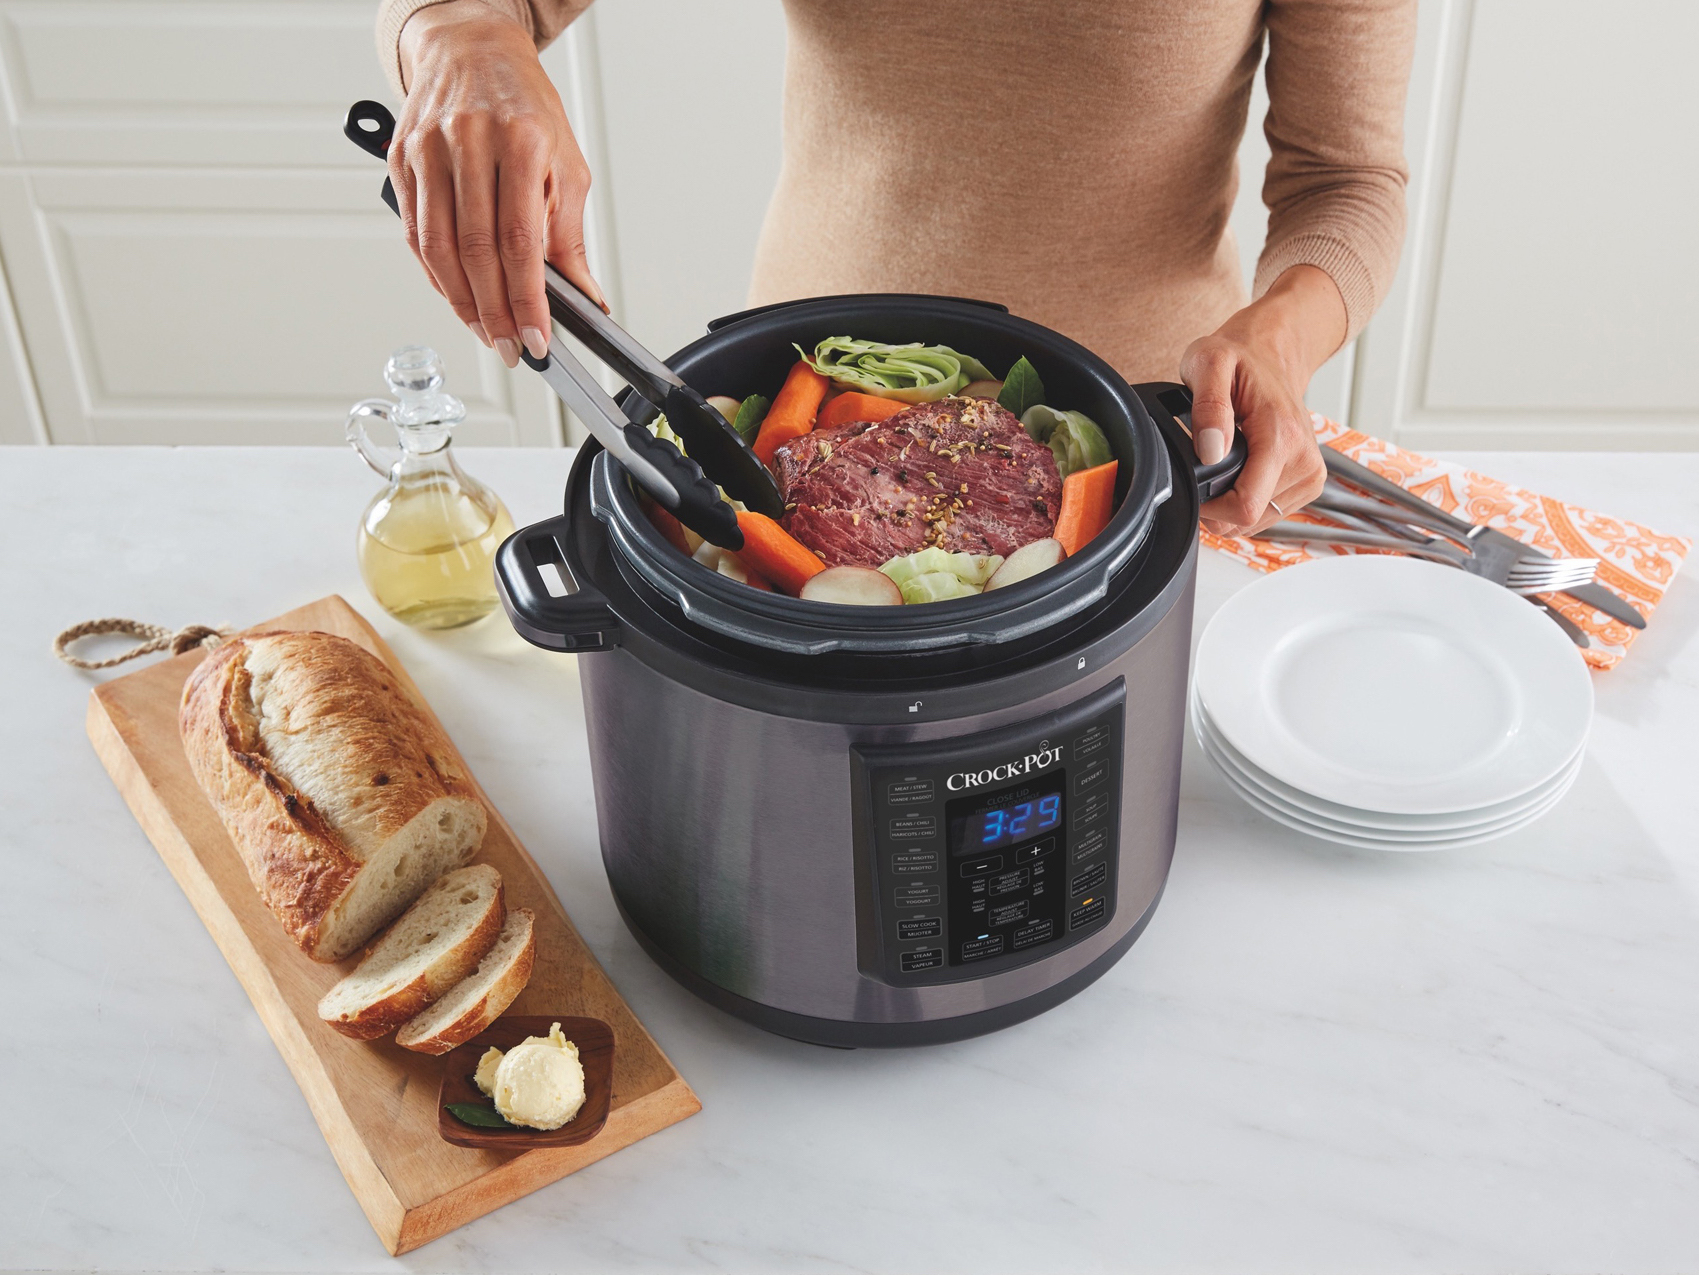 crock pot slow cooker / pressure cooker